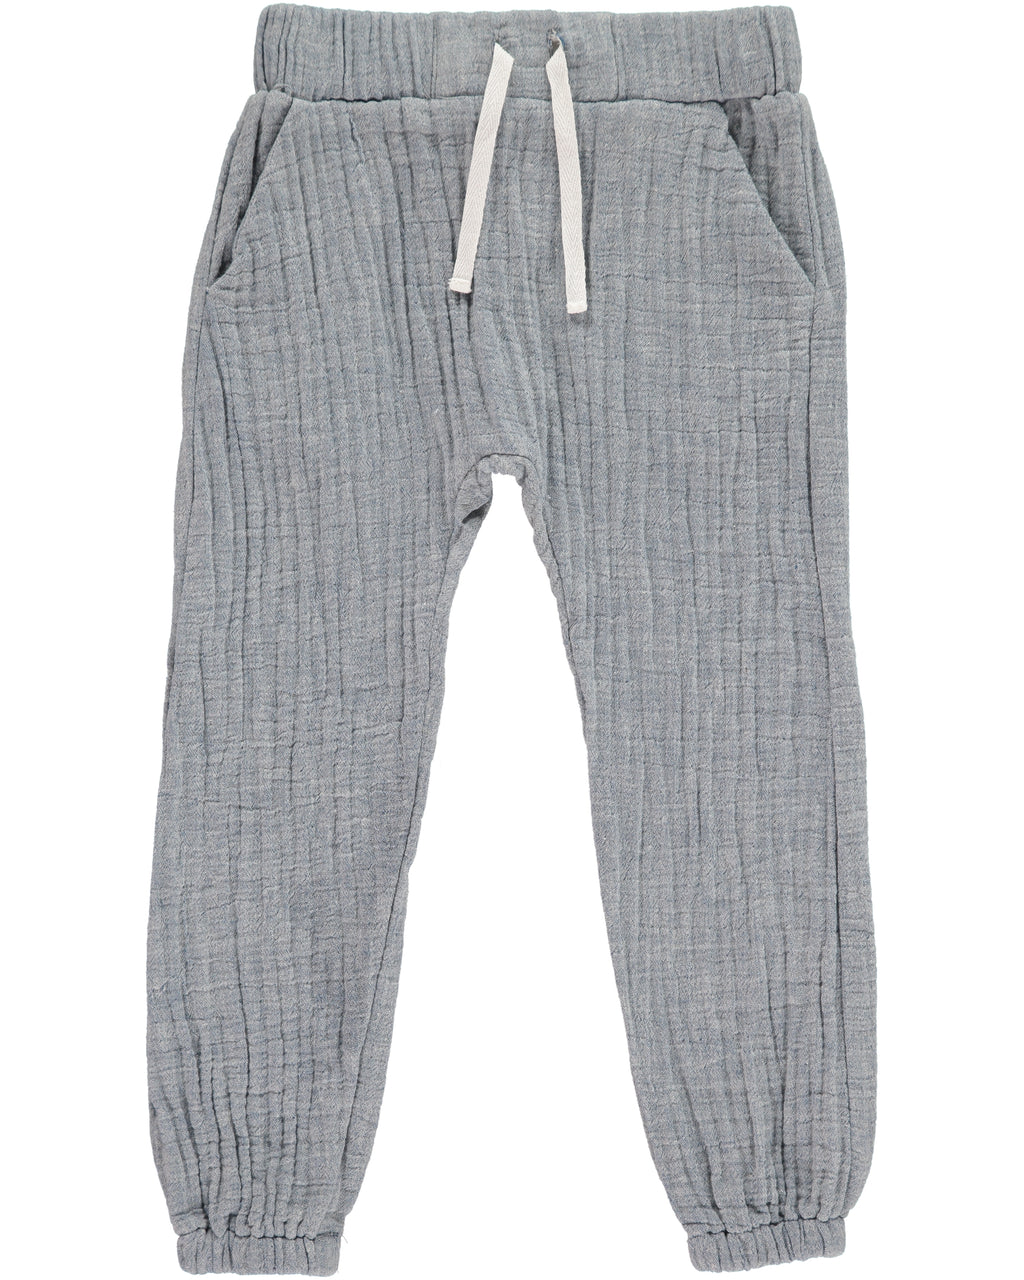 Blue Lightweight Woven Pants